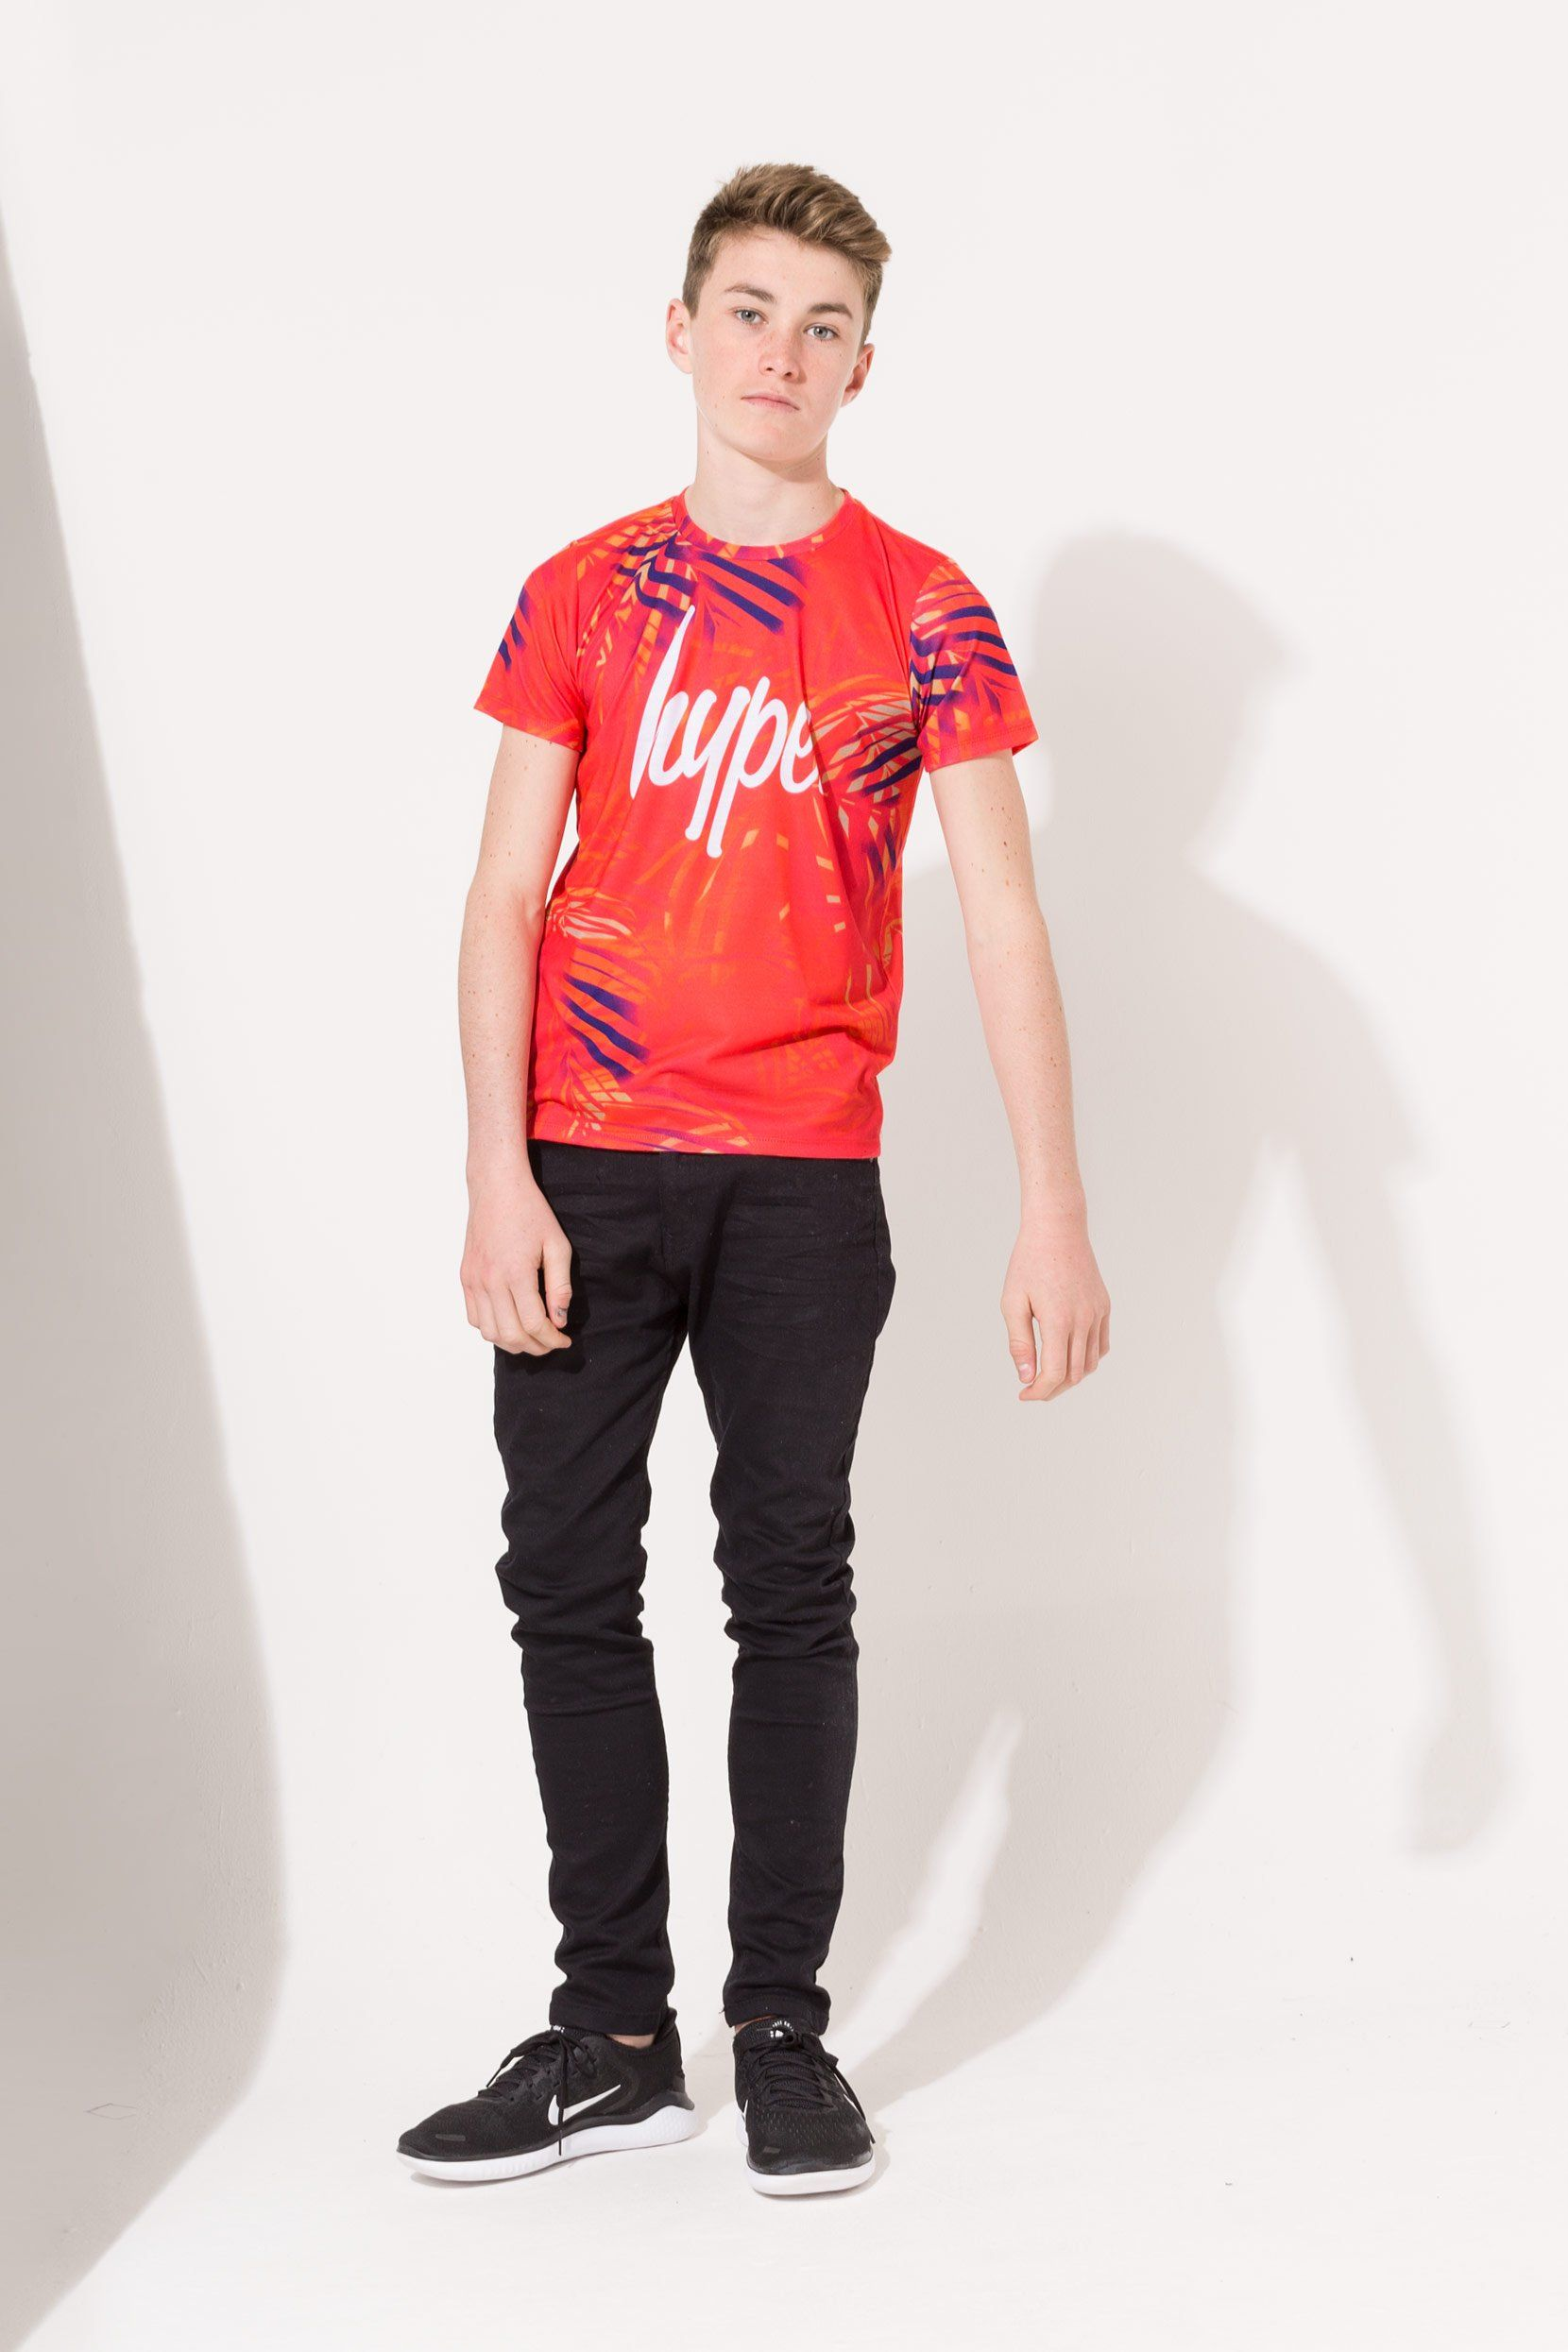 Hype Red Palm Crest Kids T-Shirt